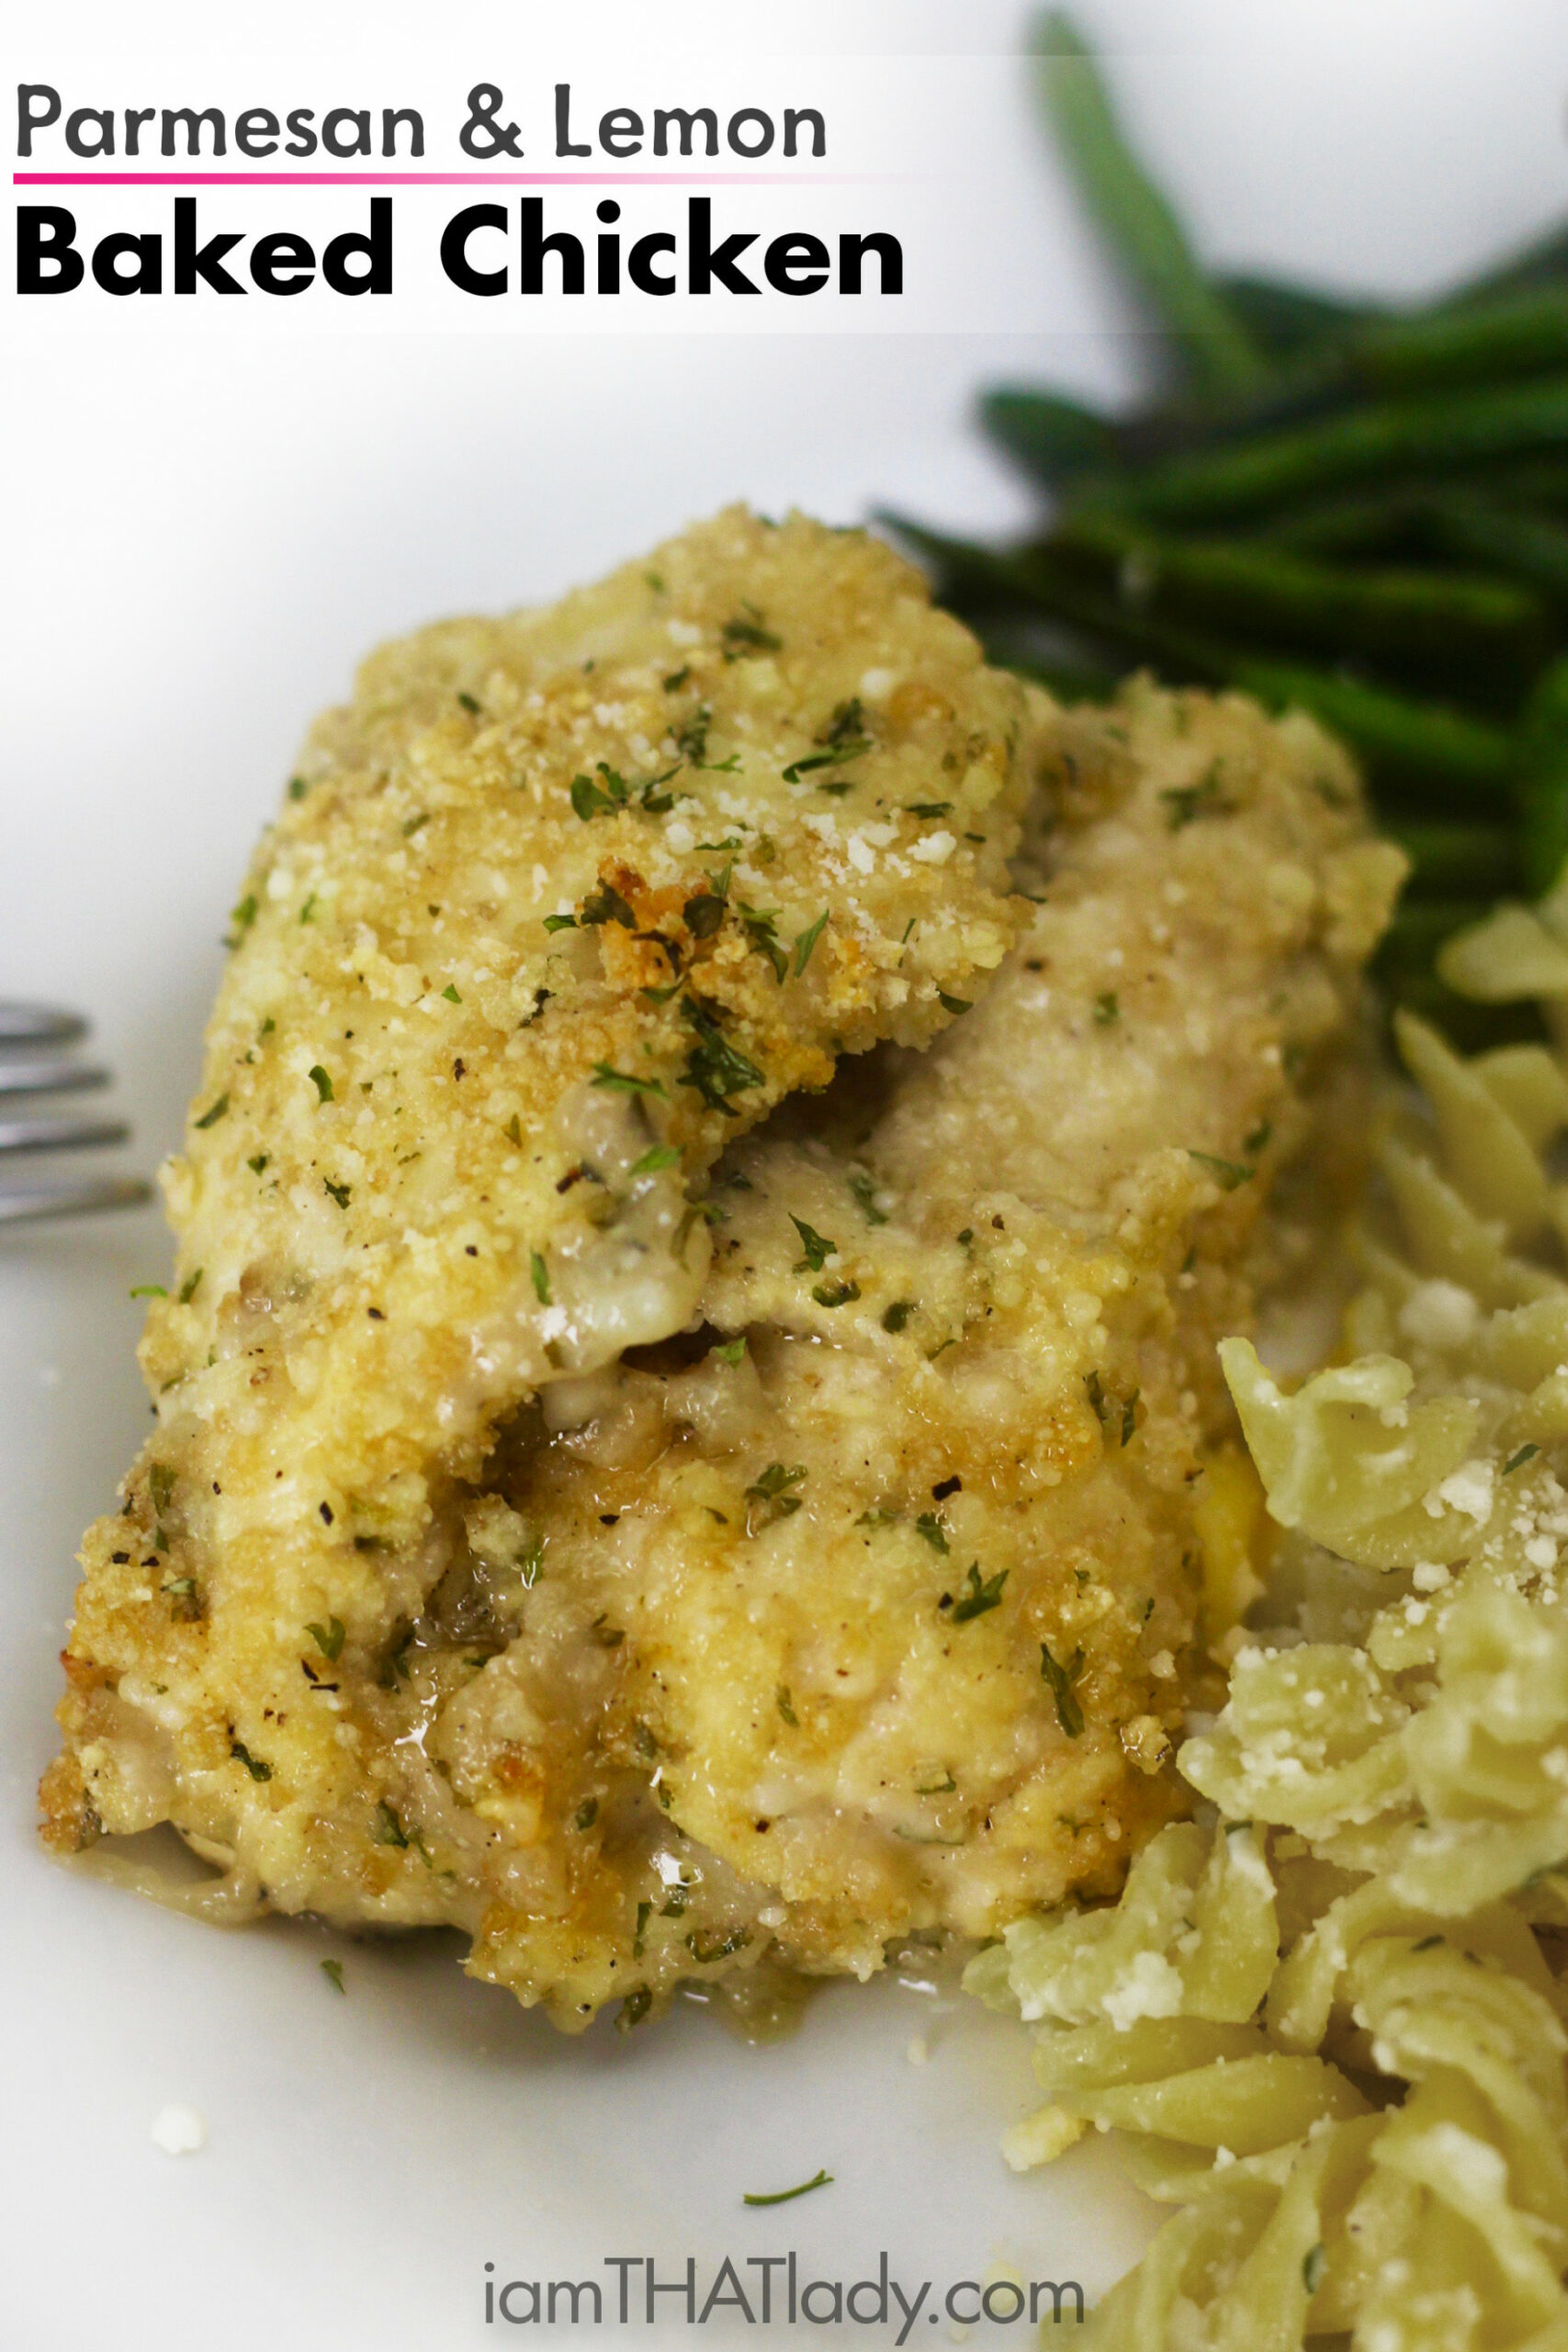 Parmesan and Lemon Baked Chicken - recipes baked chicken breast